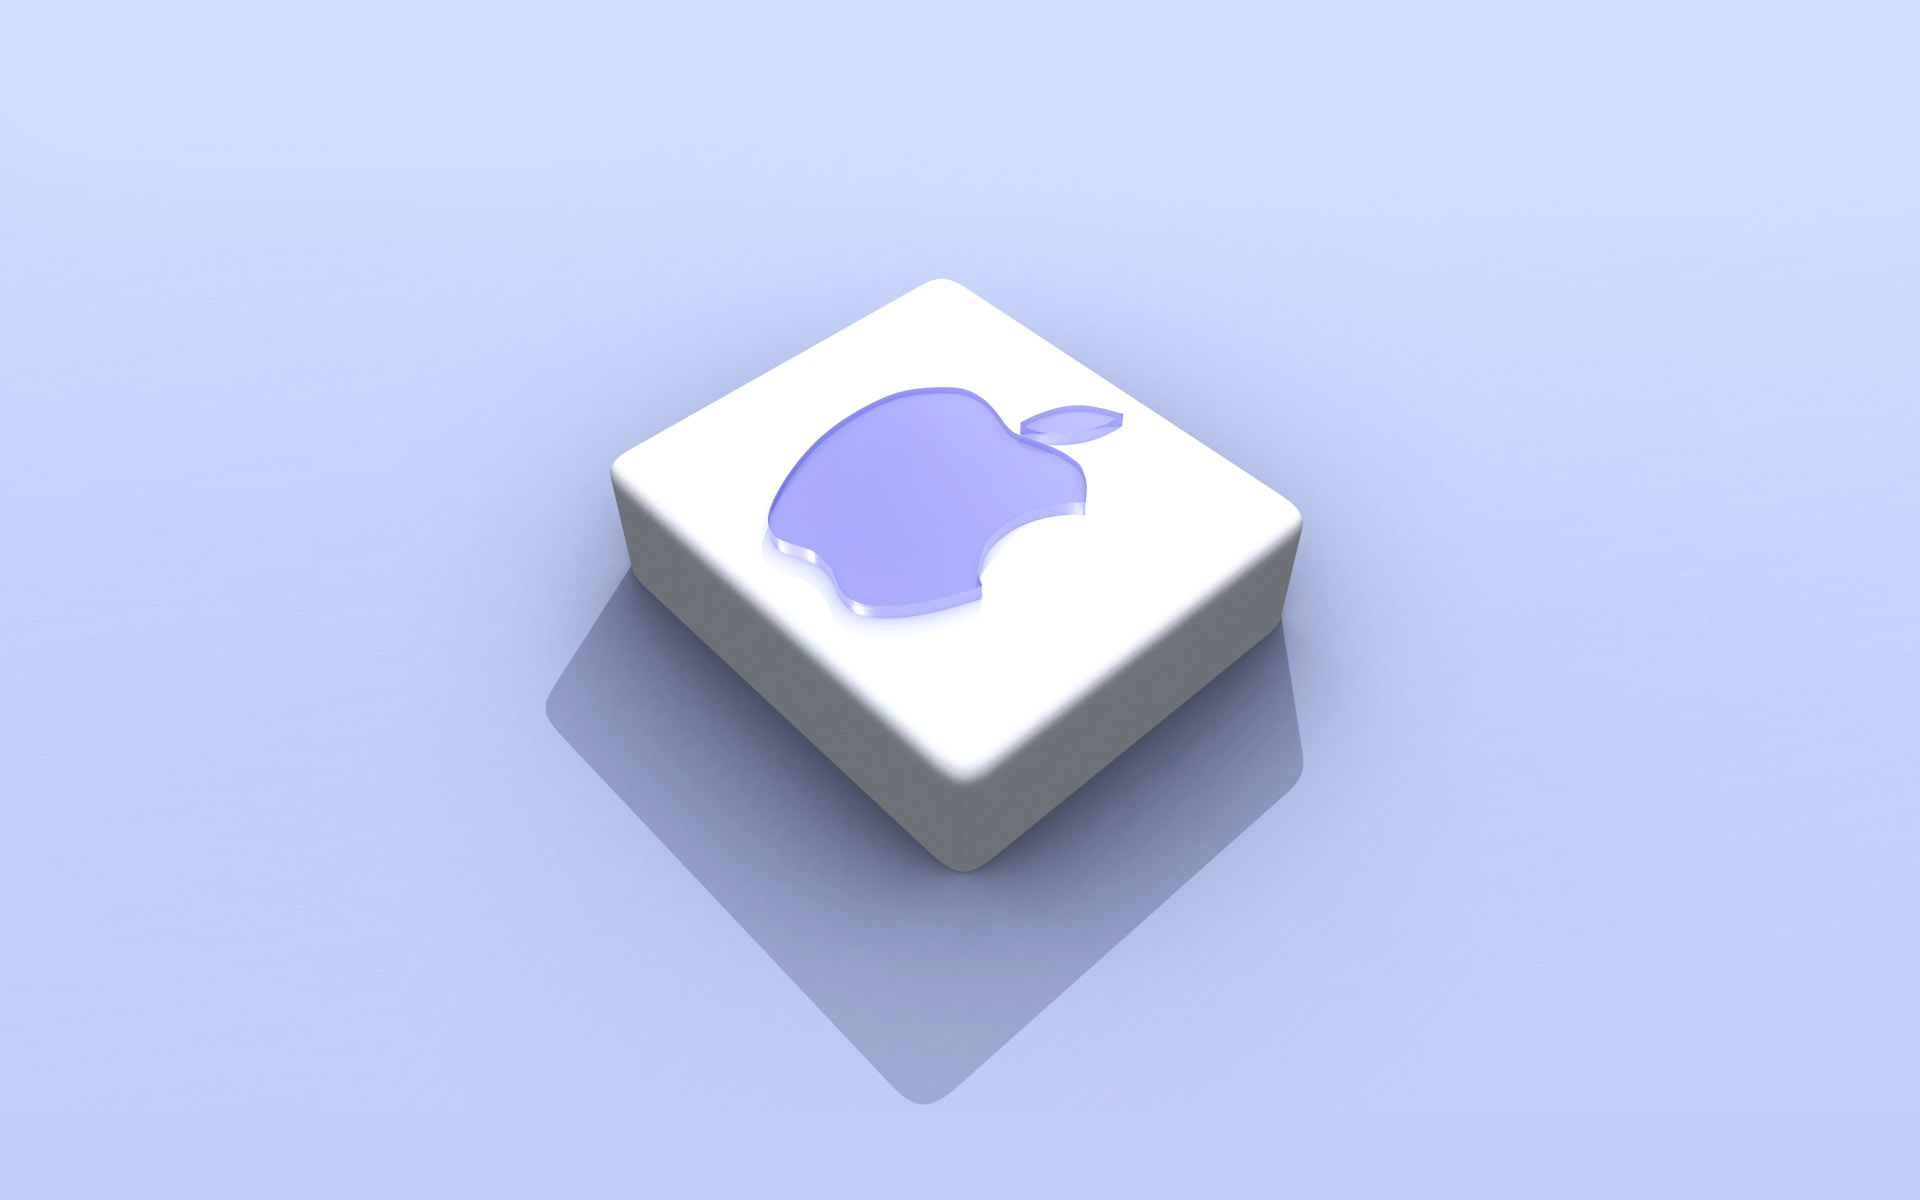 Apple wallpaper high definition 21050